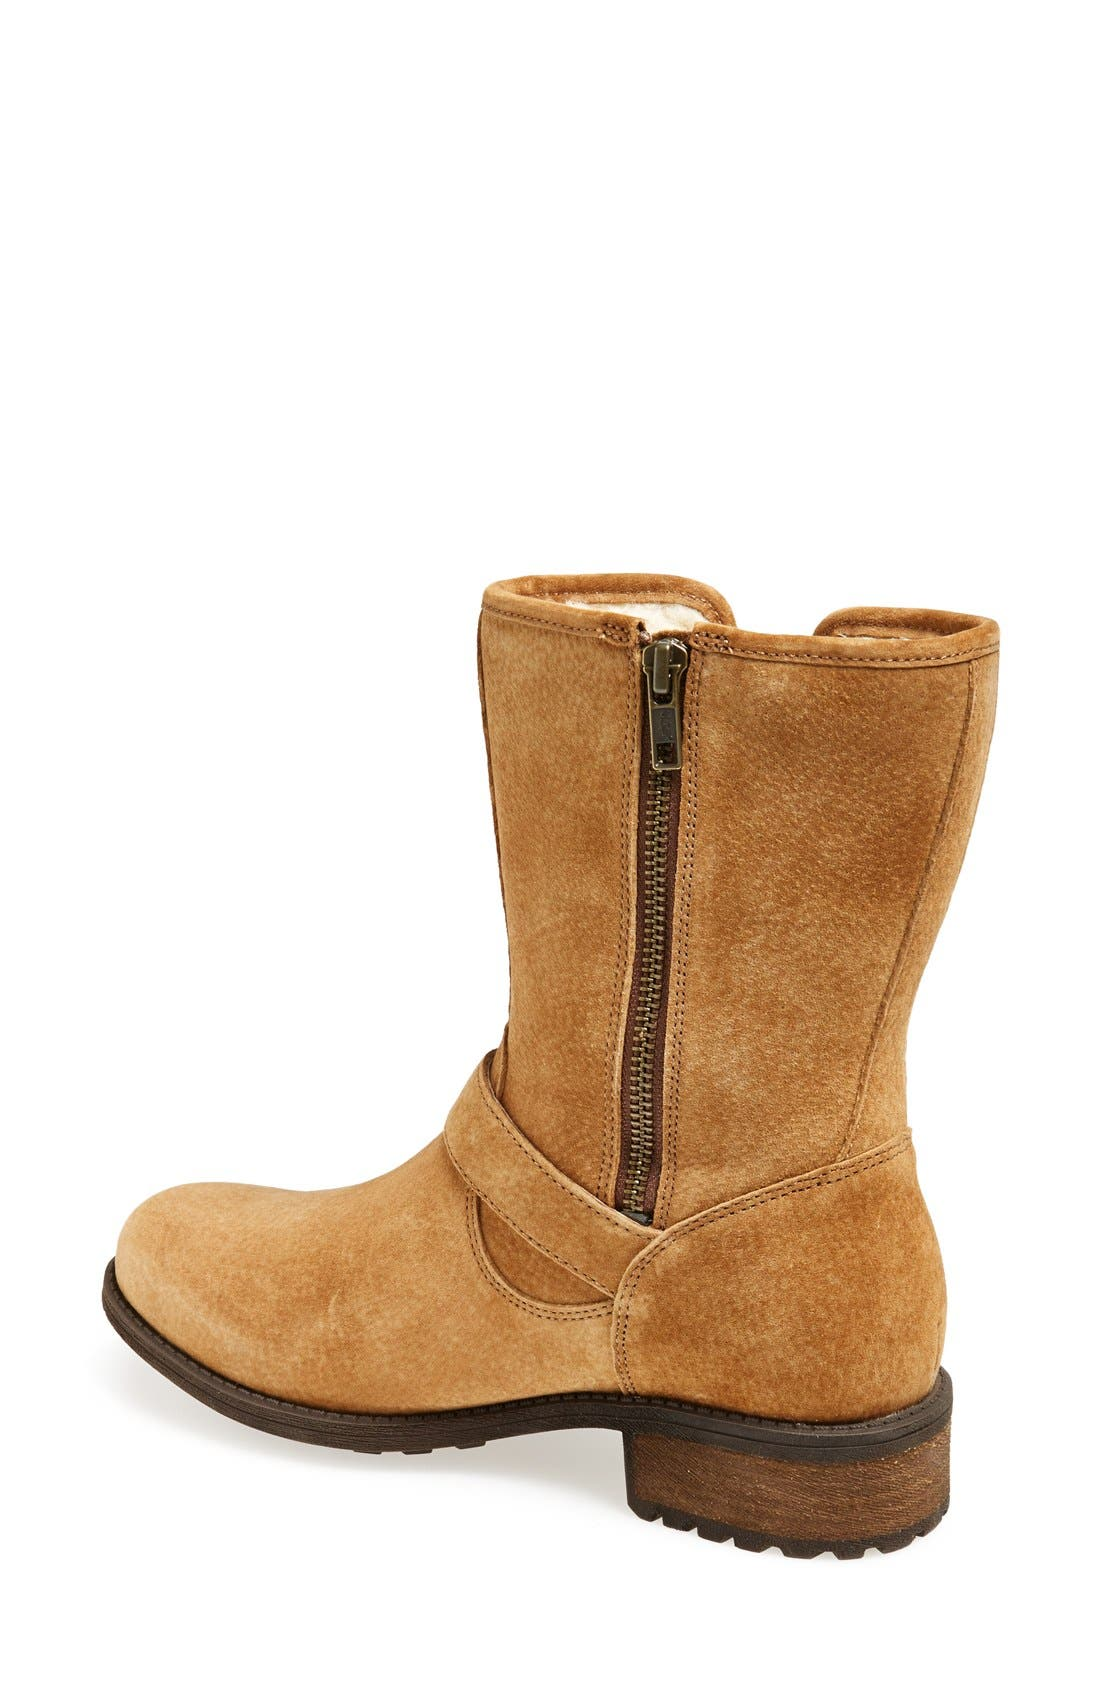 Alternate Image 2  - UGG® 'Chaney' Water Resistant Suede Moto Boot (Women)